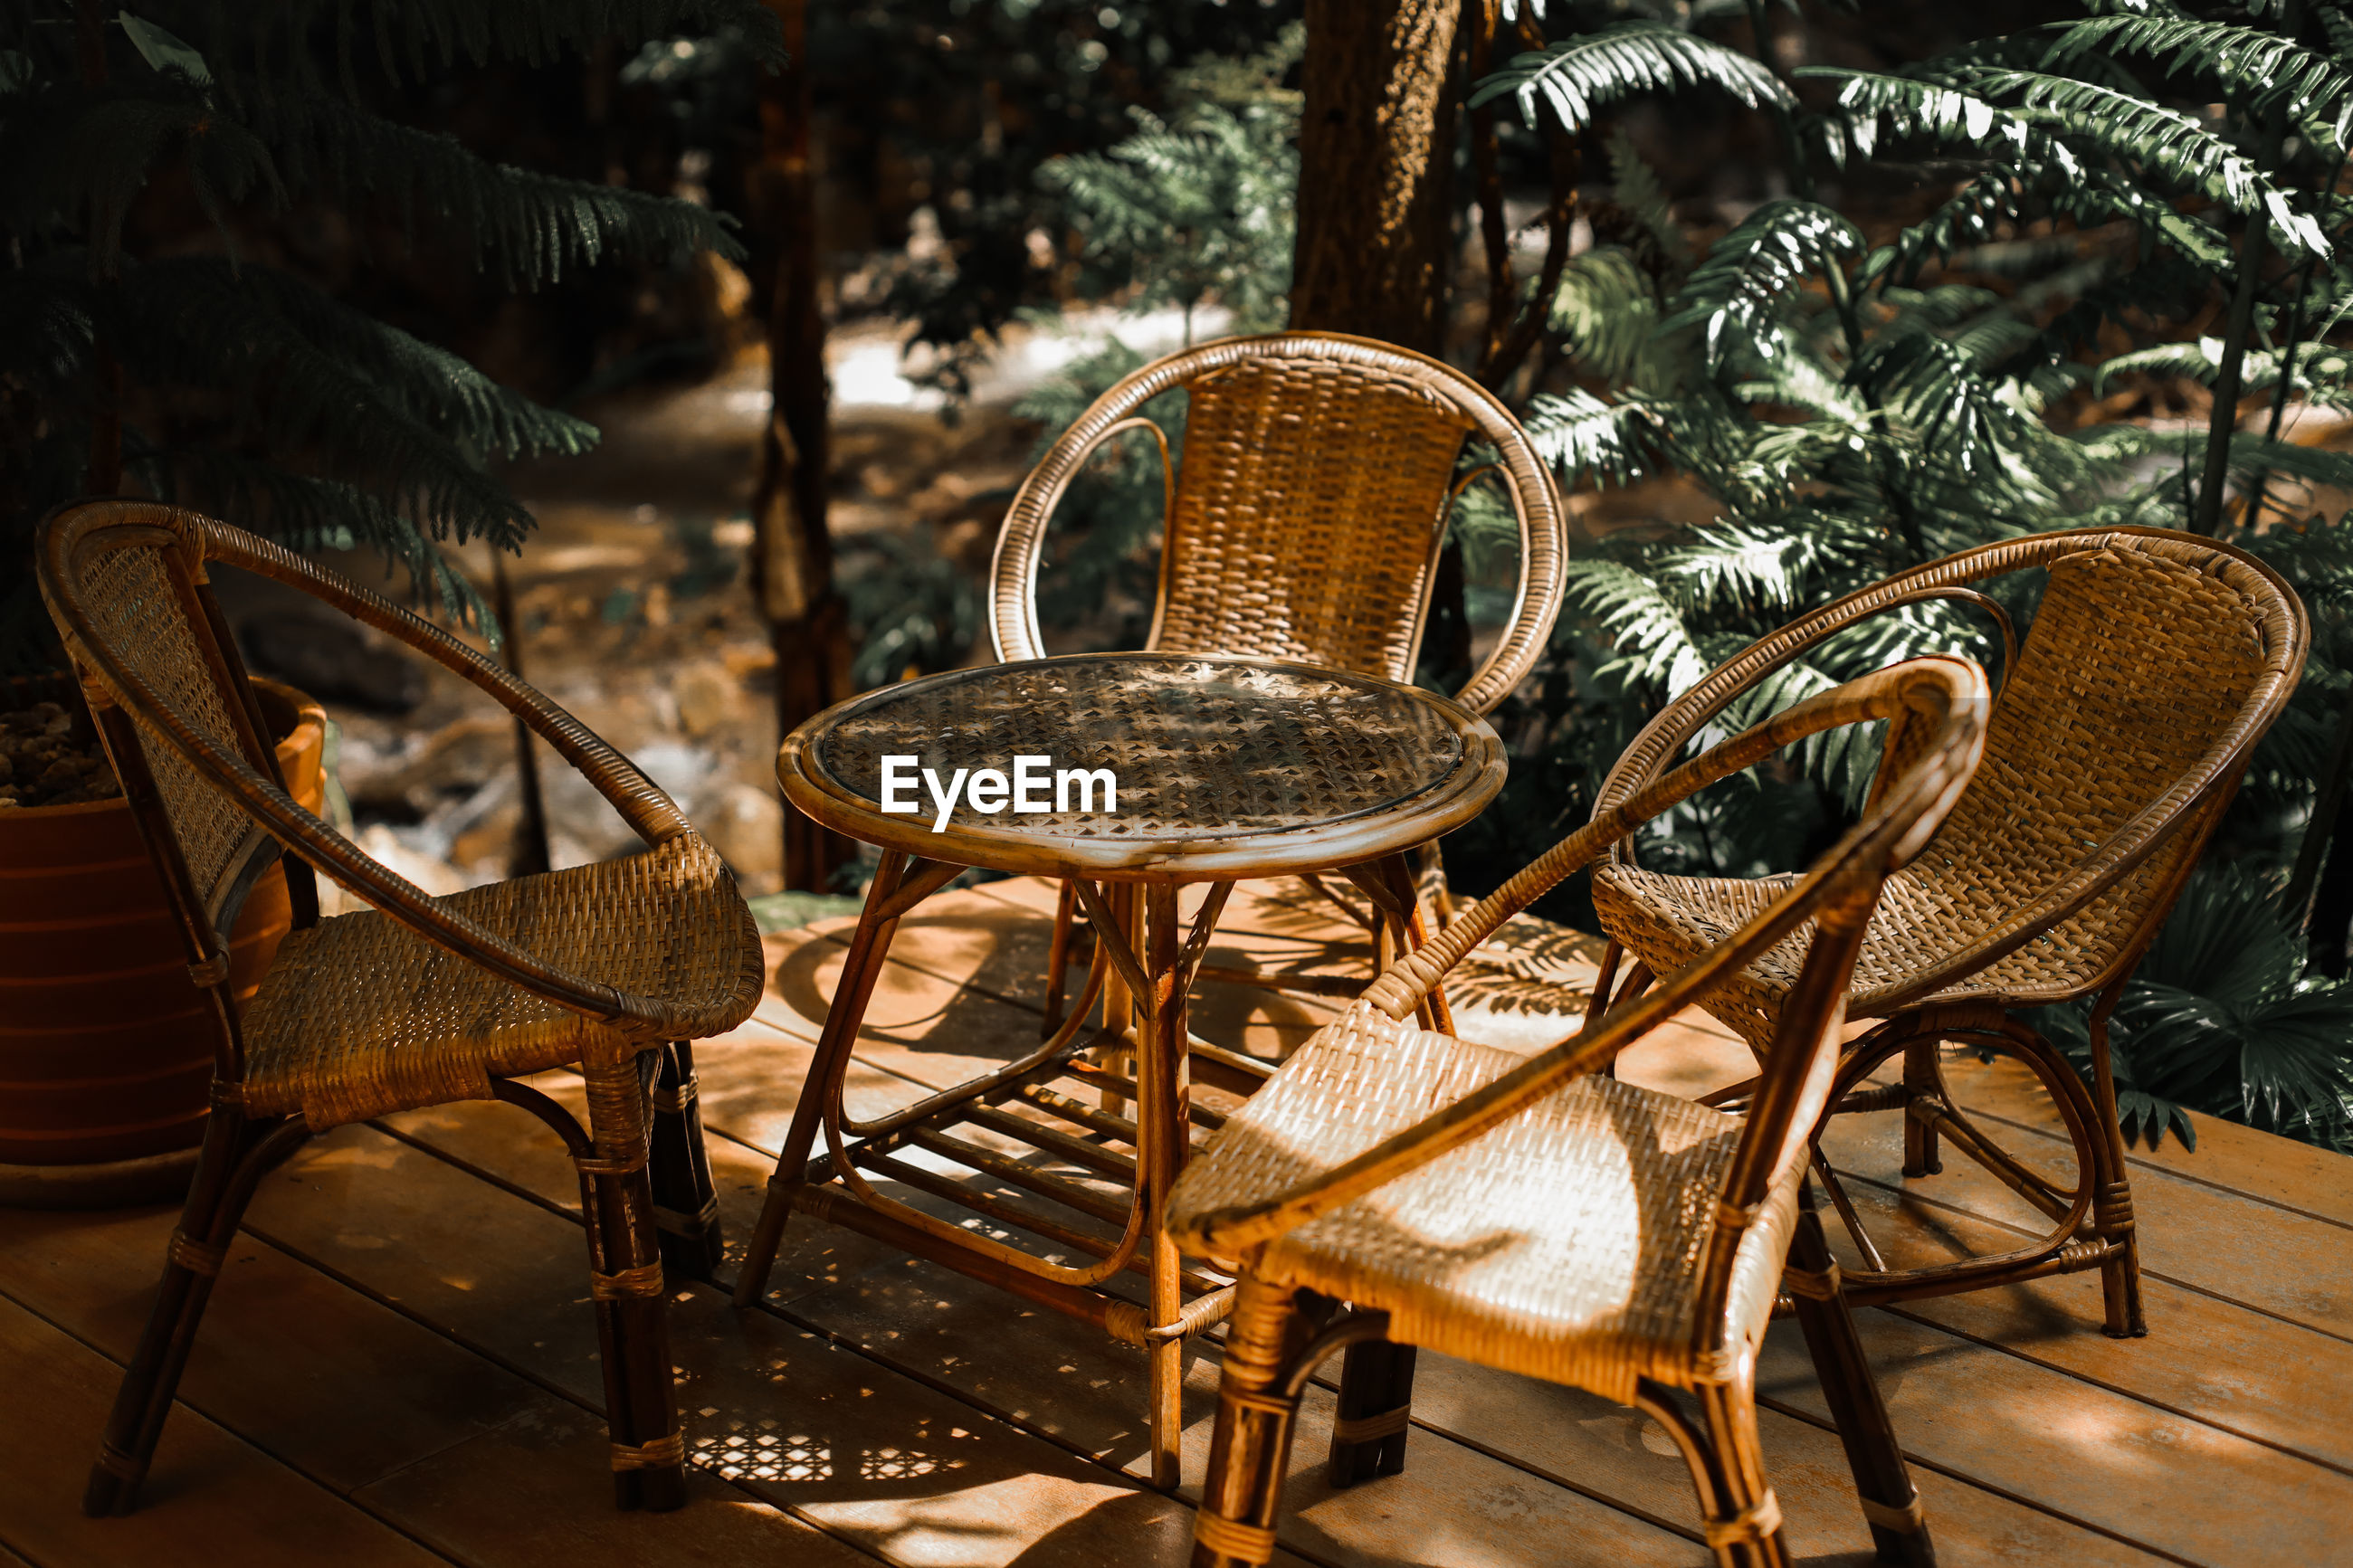 EMPTY CHAIRS AND TABLE AGAINST TREES